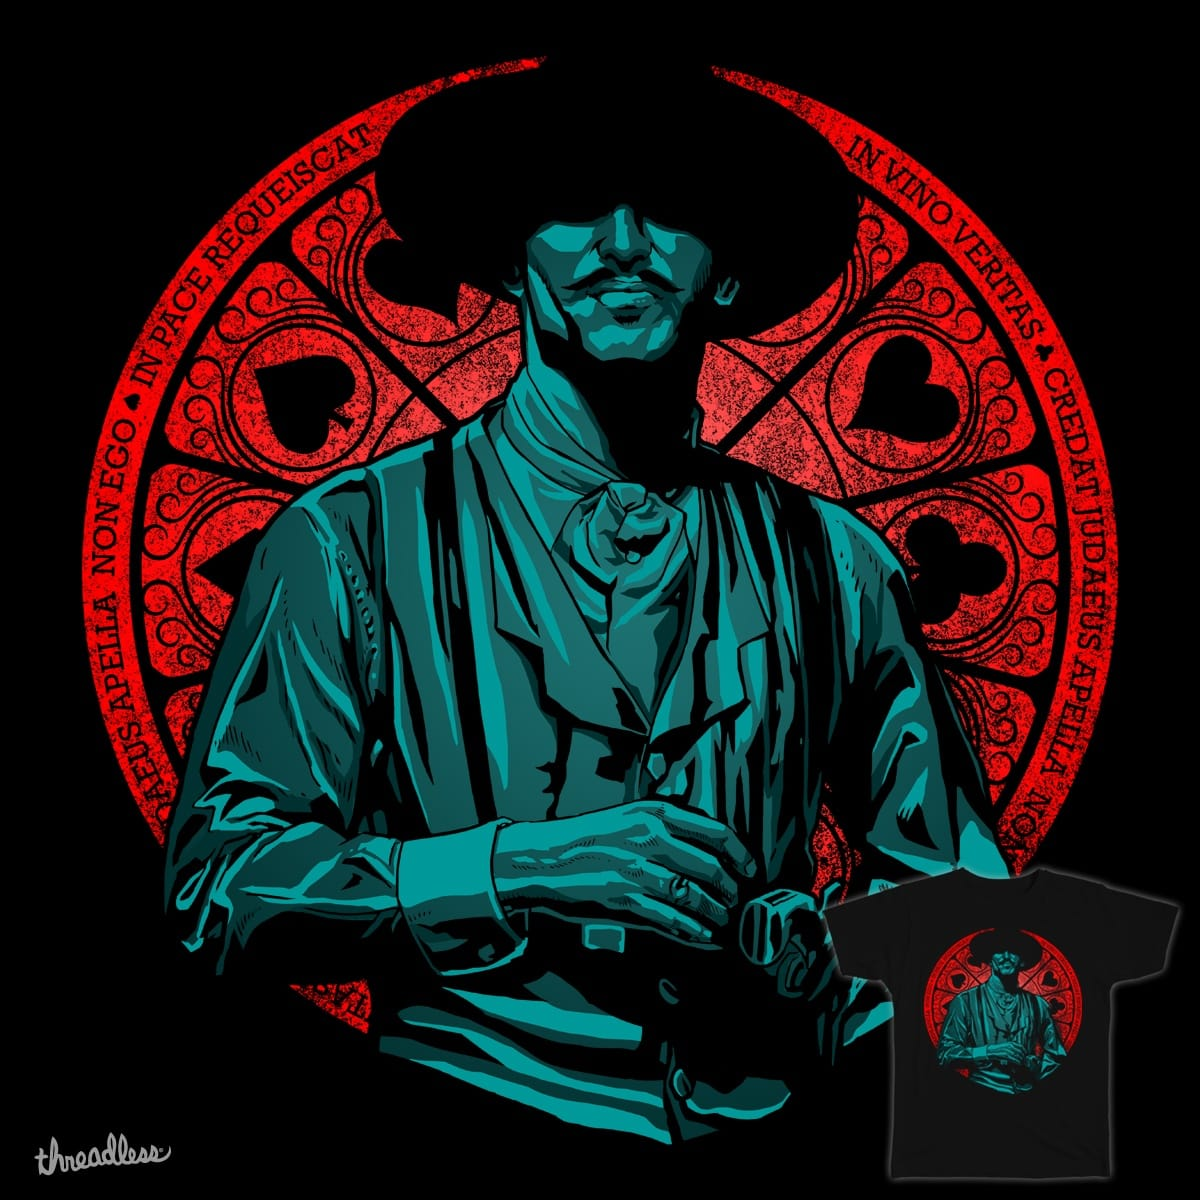 I'm Your Huckleberry by iskandarsalim on Threadless